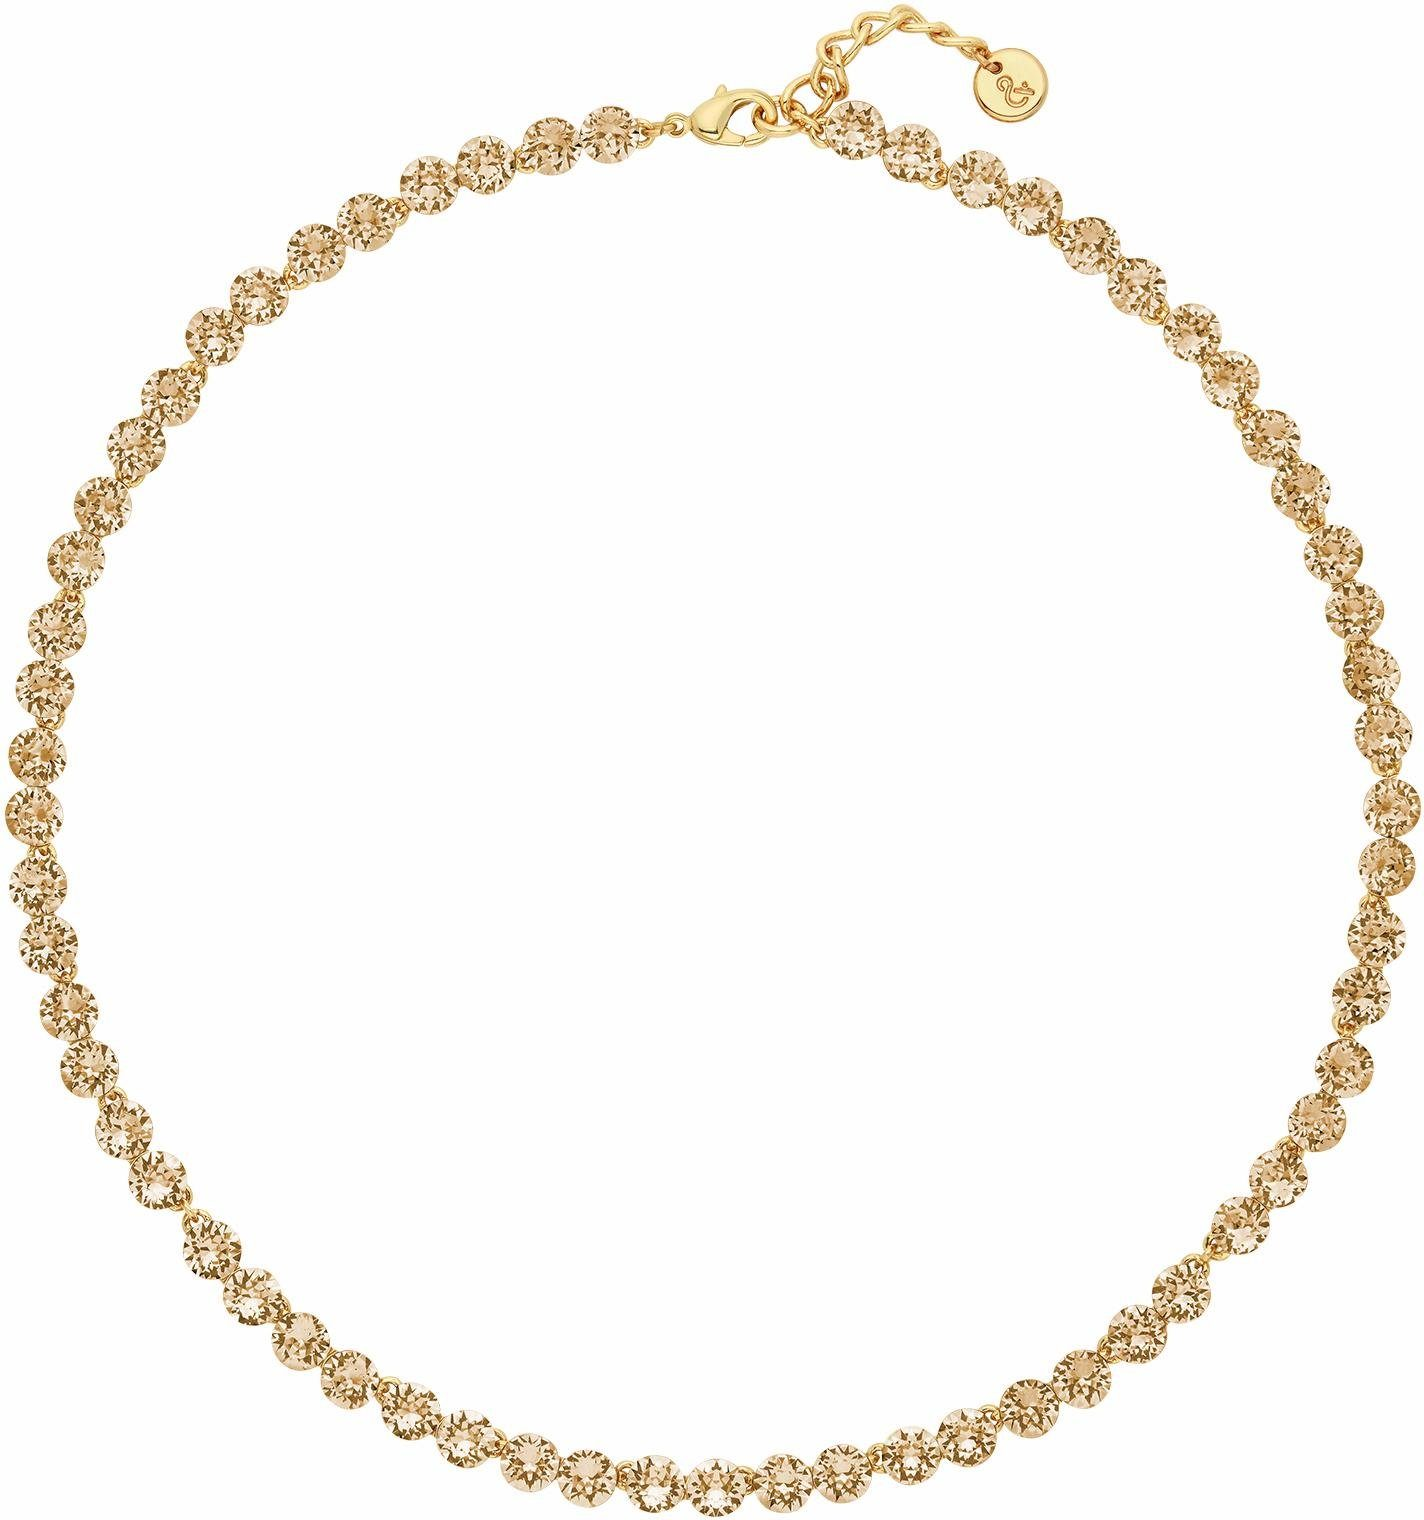 Lolaandgrace Collier »PALACE ALL-AROUND COLLIER, 5251847« mit Swarovski® Kristallen